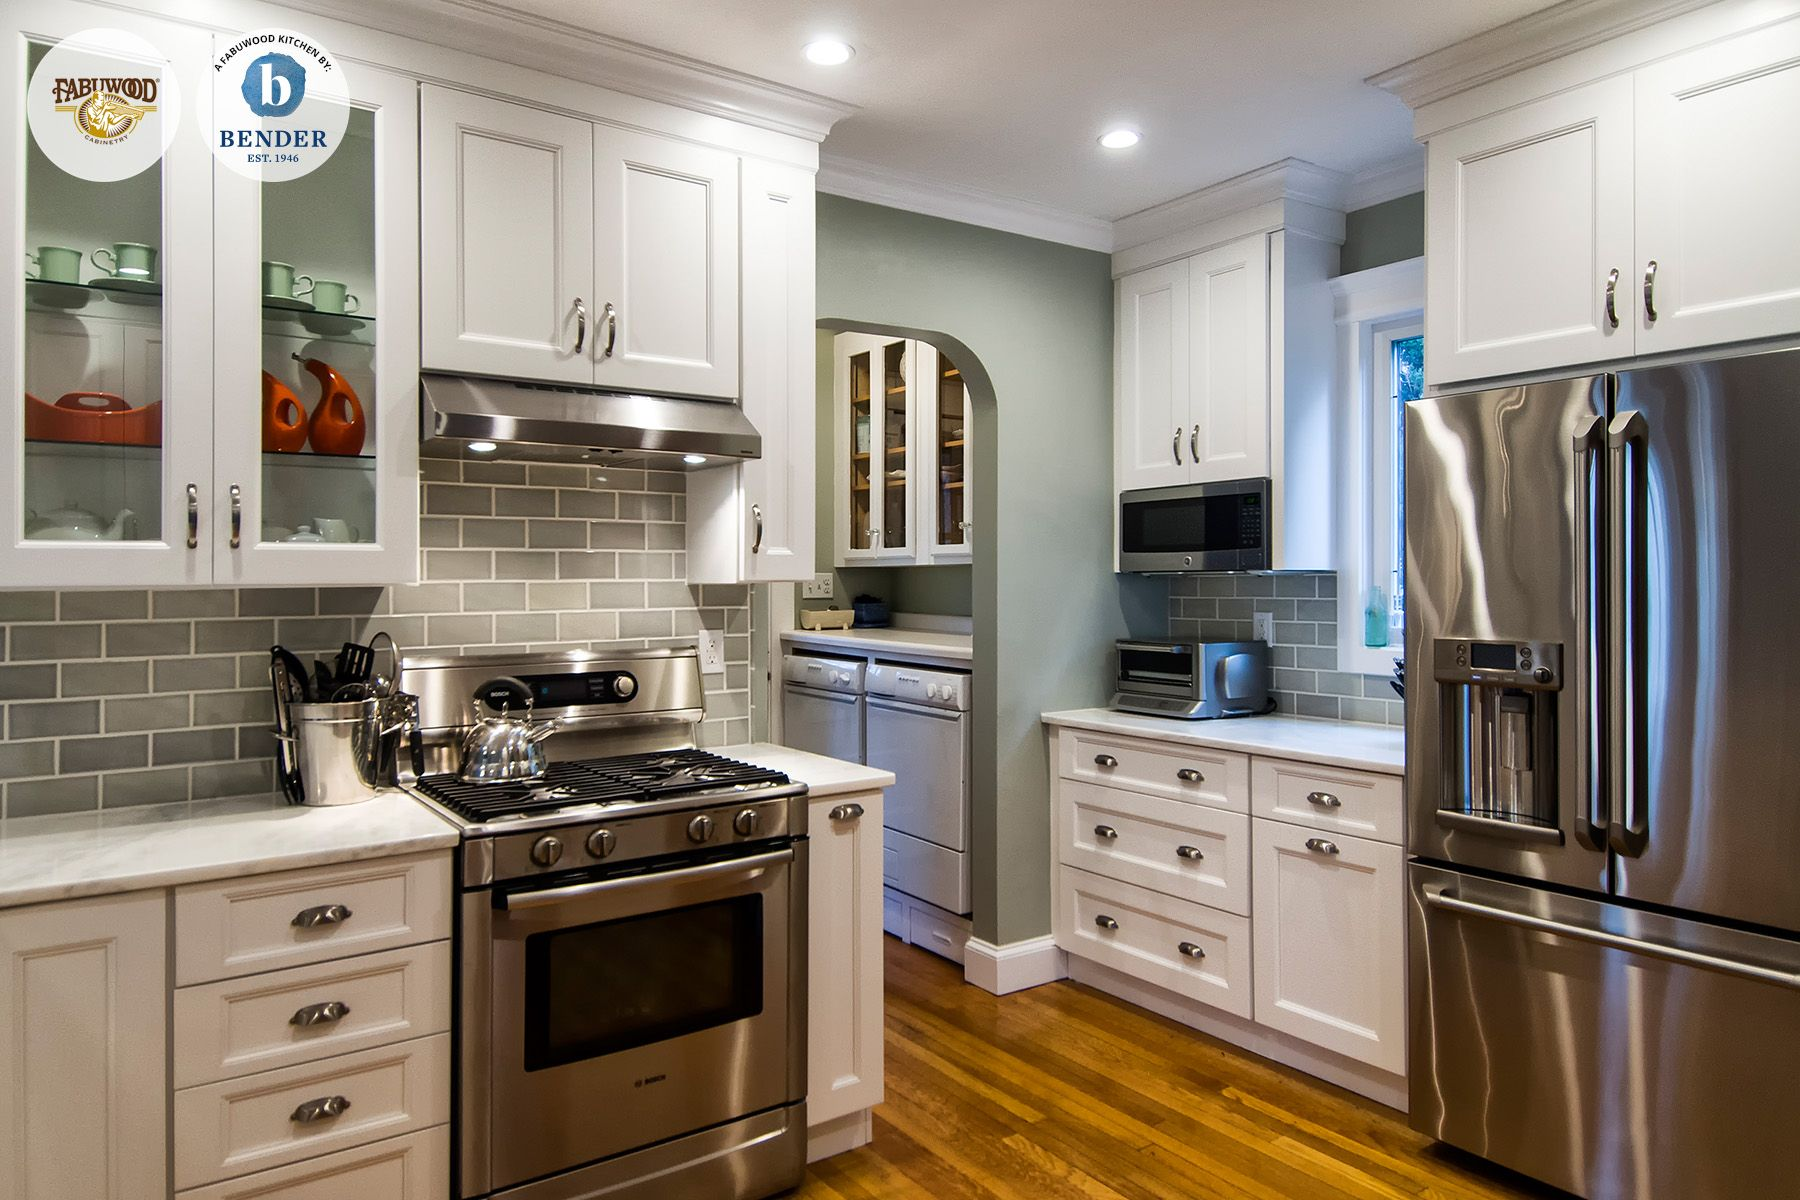 This Beautiful Fabuwood Nexus Frost Kitchen Was Built By Bender Plumbing Located In Norwalk Ct Http Www F Kitchen Redecorating Kitchen Fabuwood Cabinets